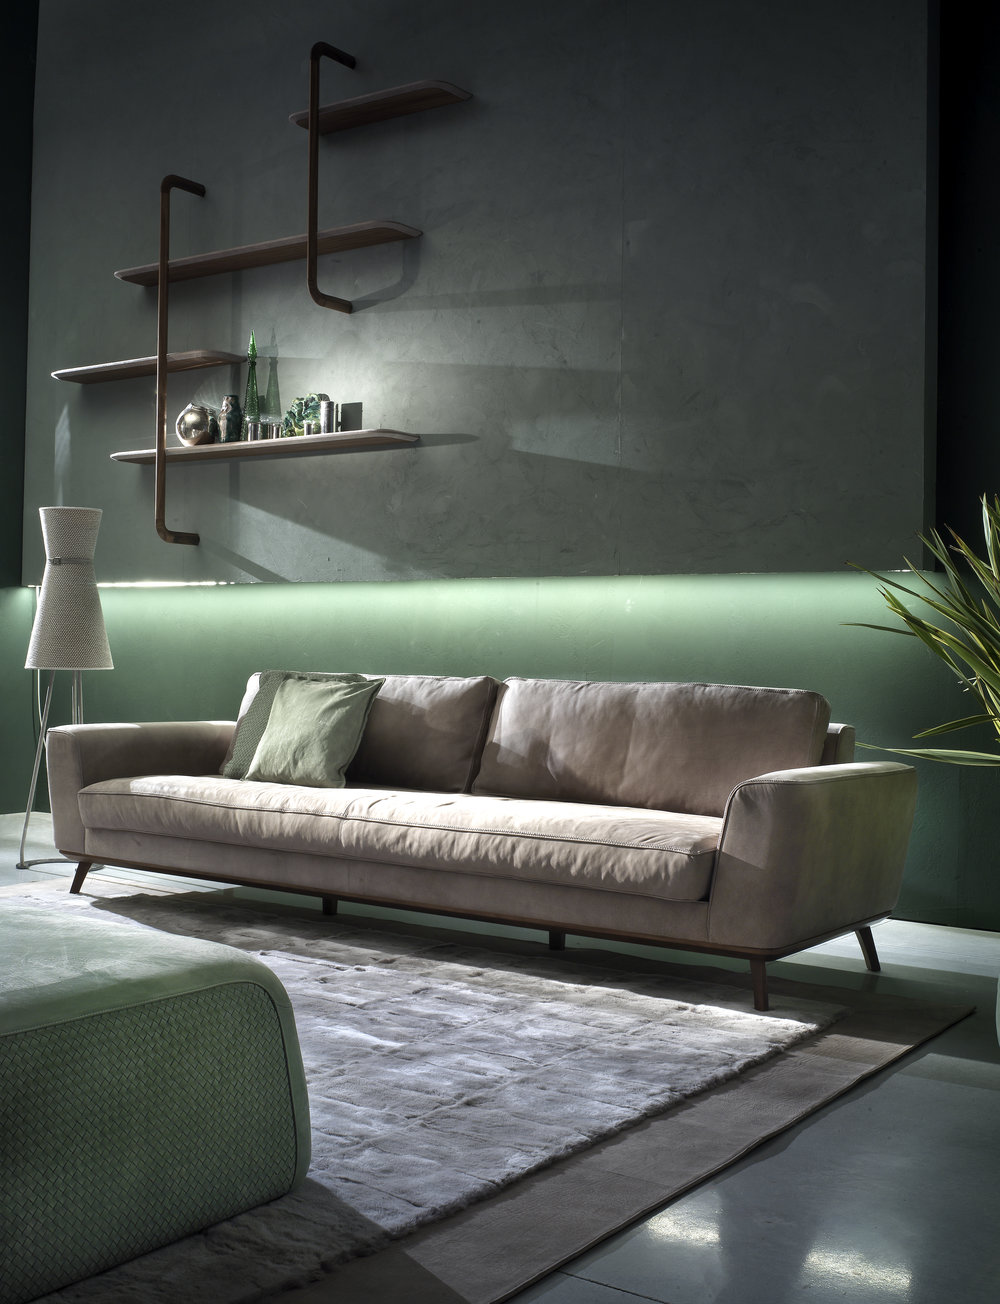 Ulivi Salotti - Robert contemporary leather sofa - Masha Shapiro Agency.jpg